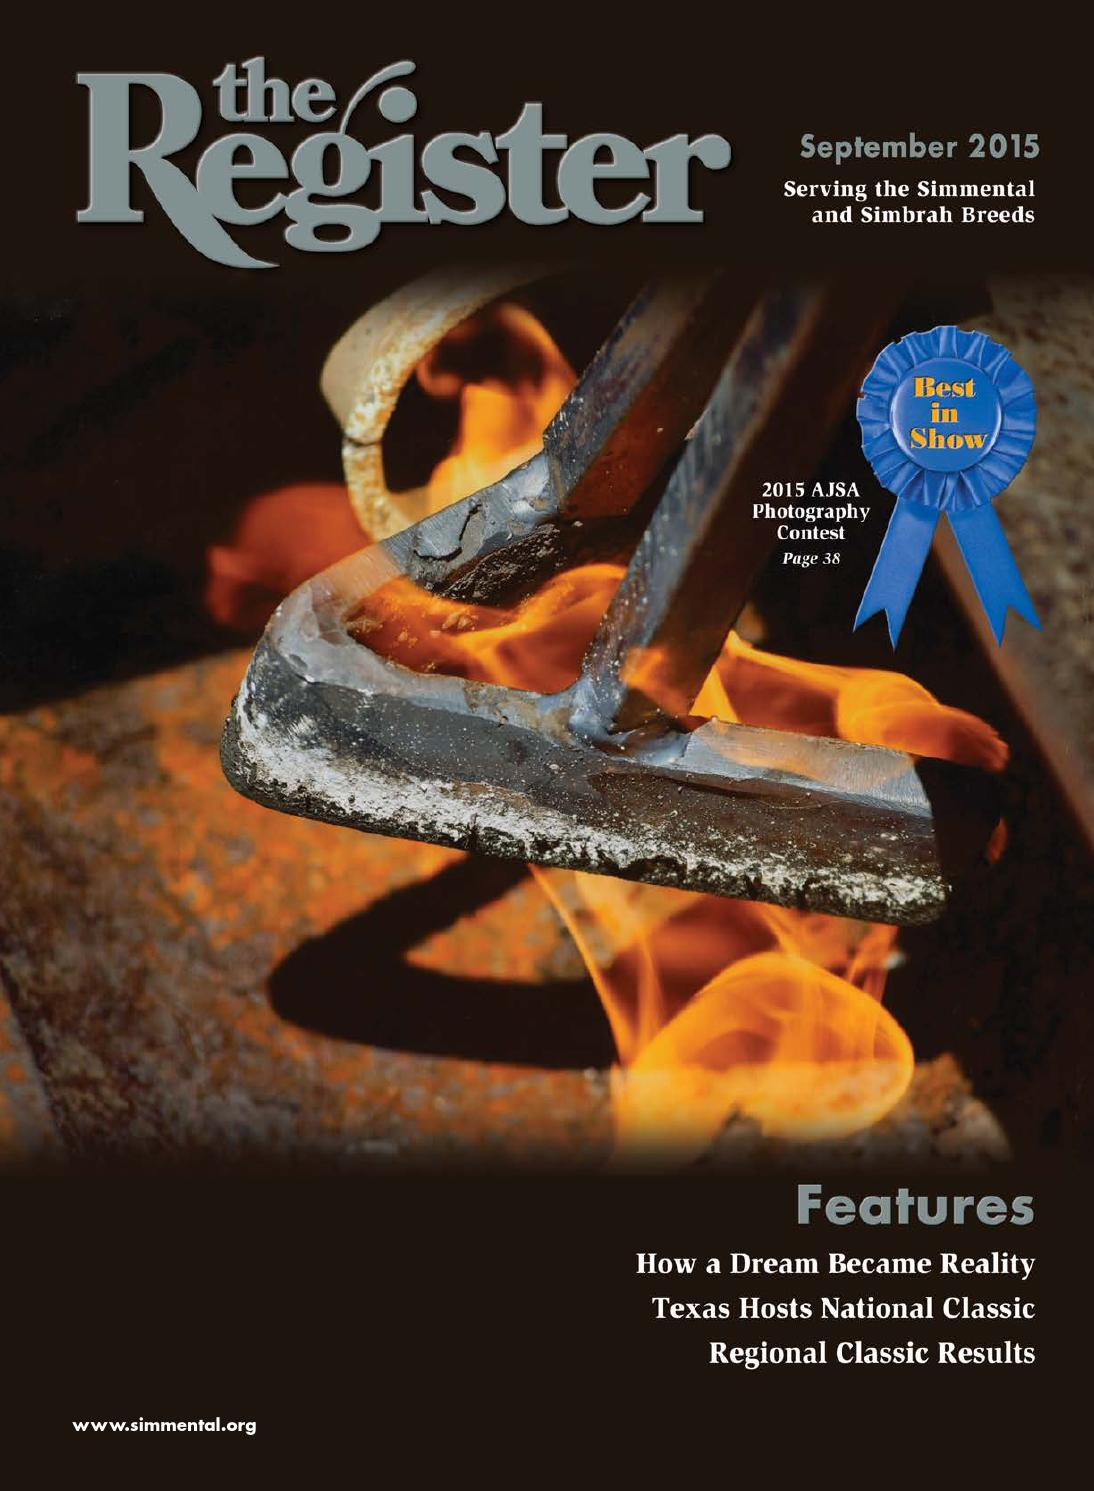 the register september 2015 by american simmental publication